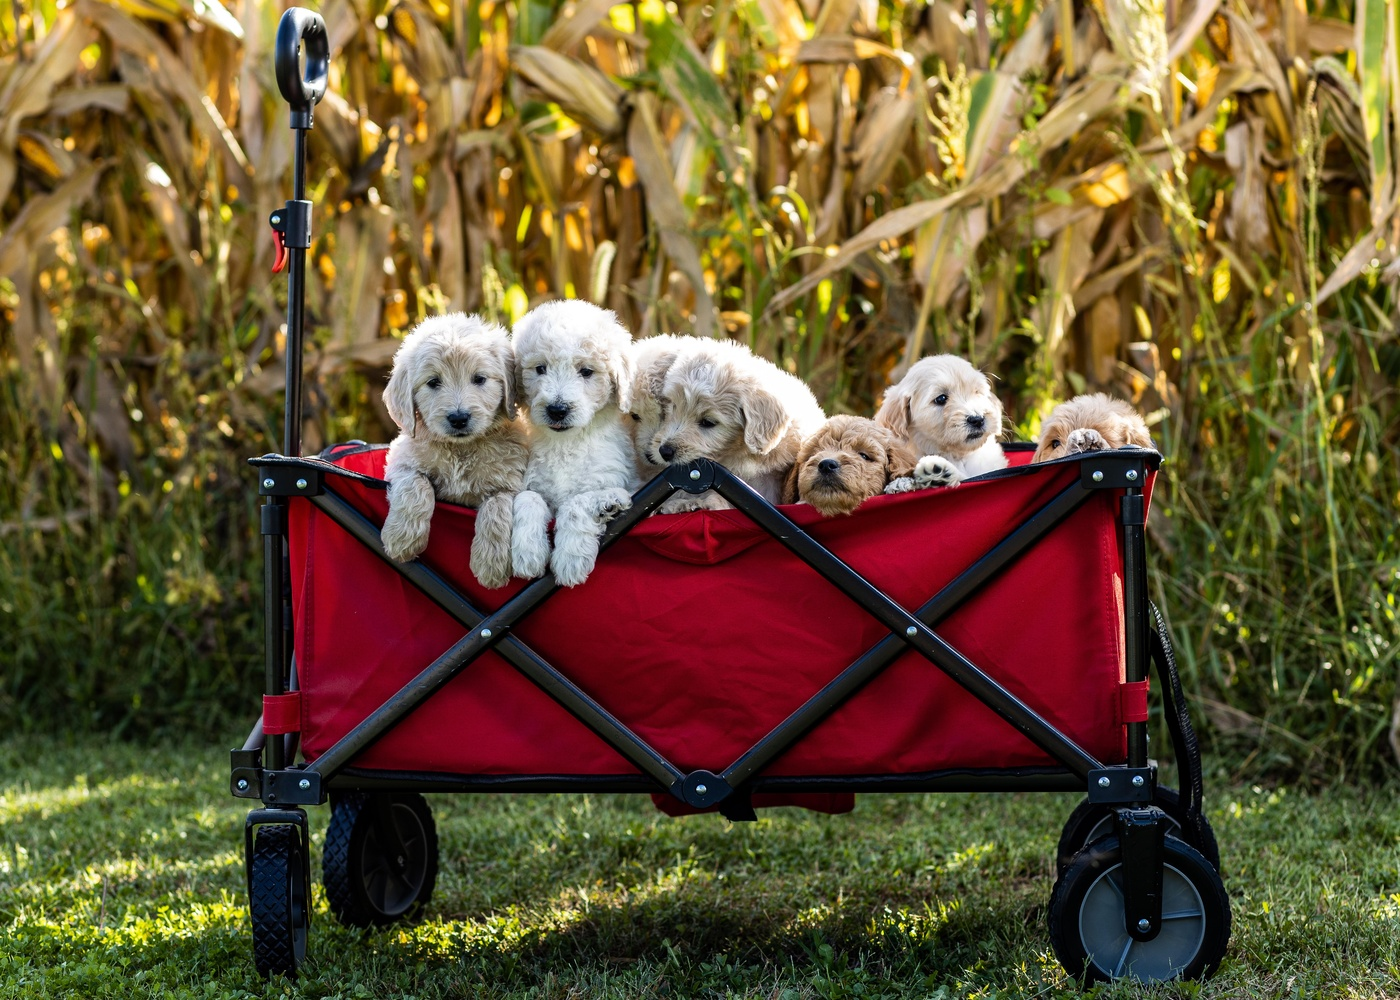 Basket of Pups by Chris Manning